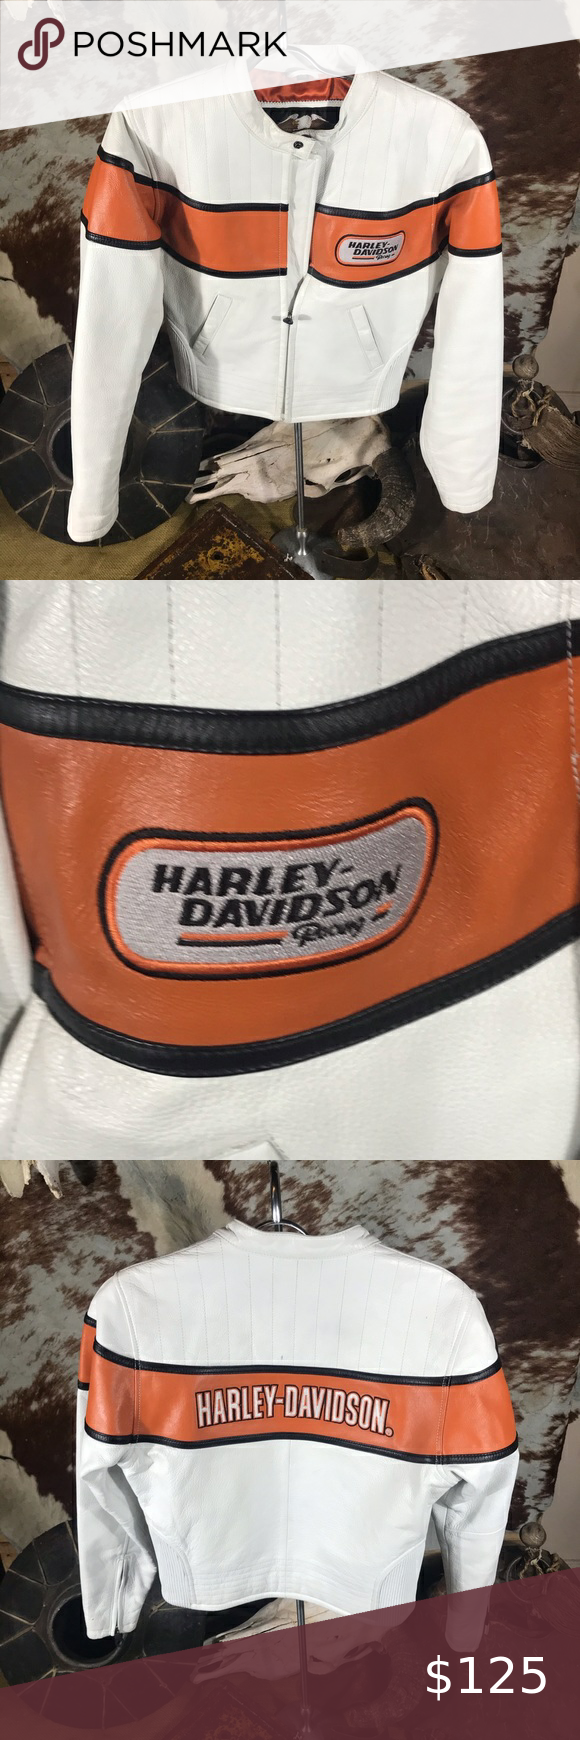 Harley Davidson Women's Leather Jacket Size XS. in 2020 ...